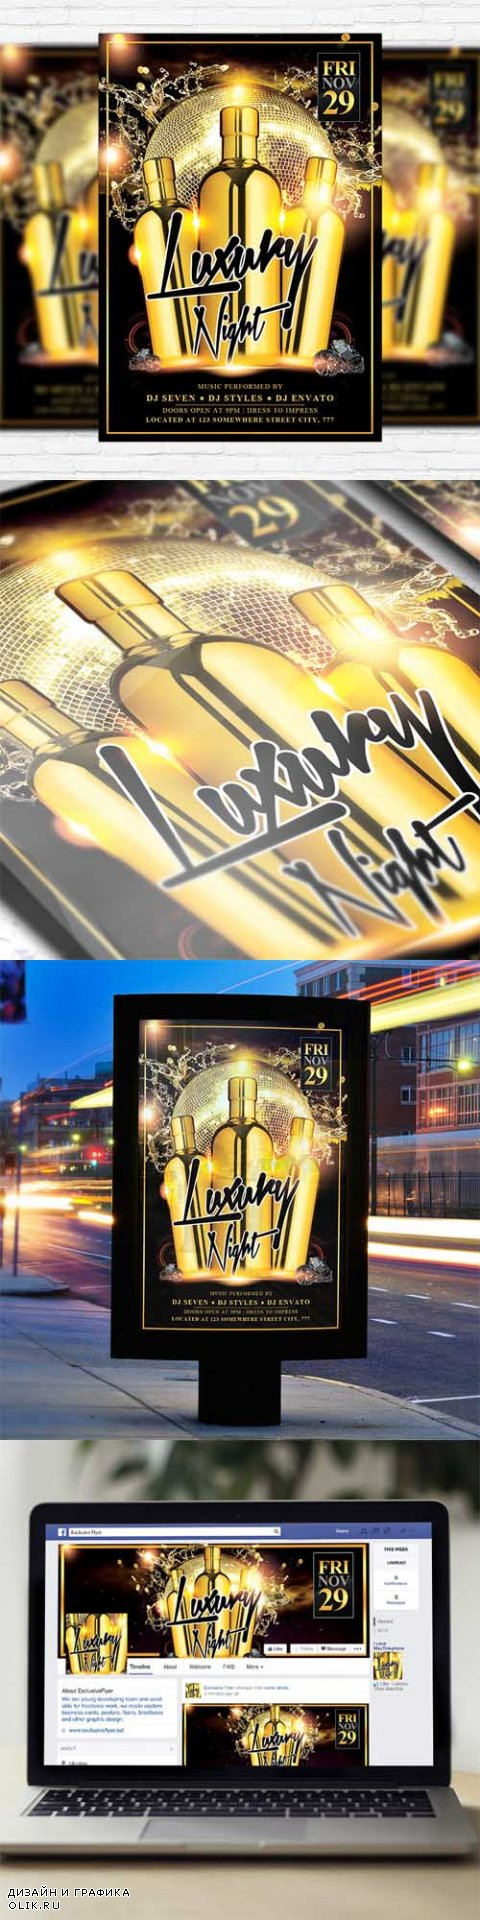 Flyer Template - Luxury Night + Facebook Cover